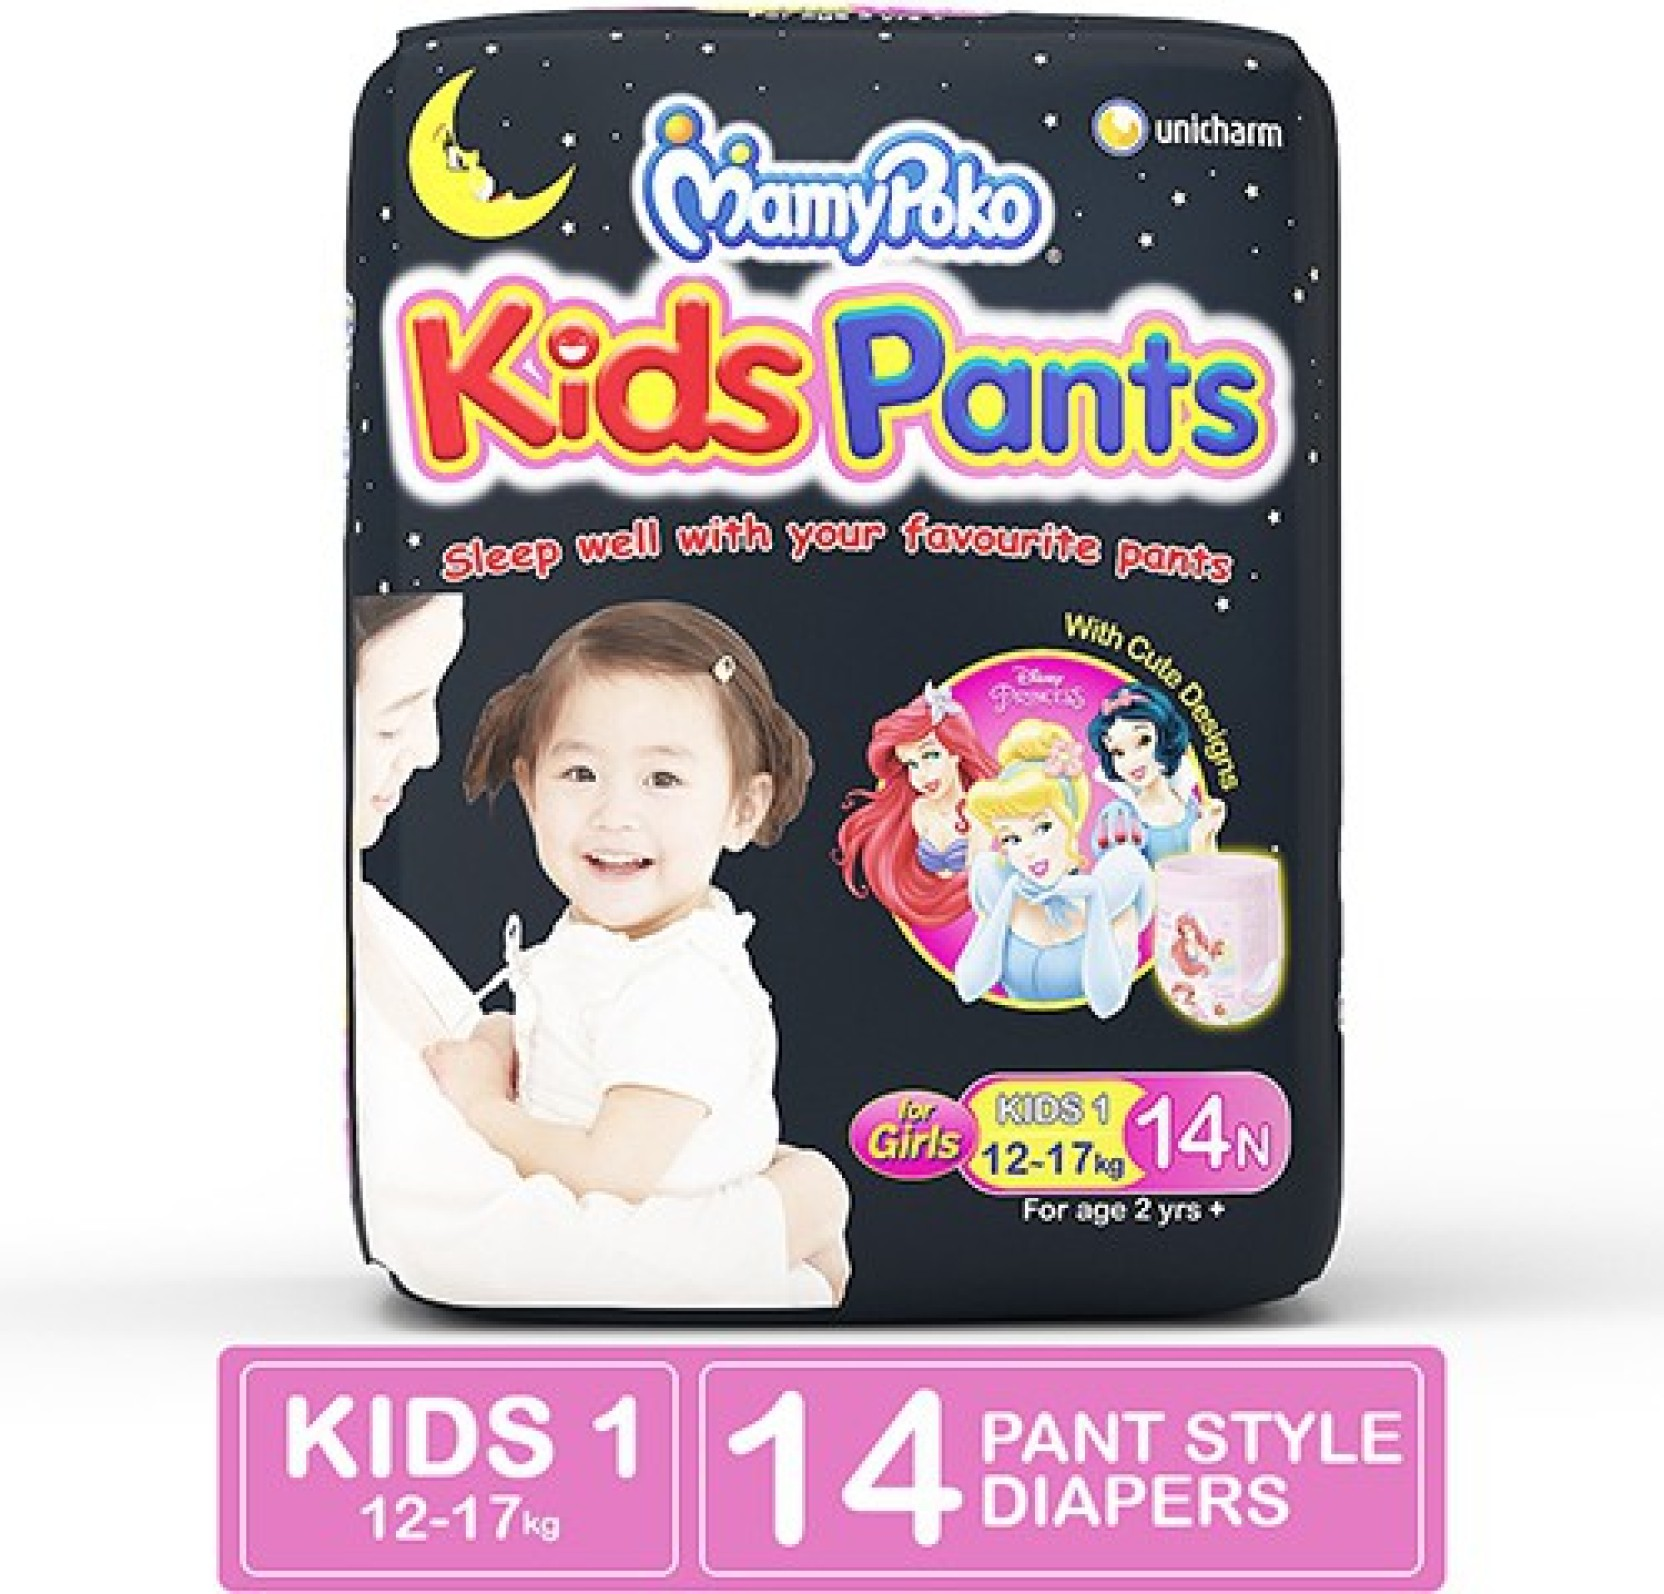 Mamypoko Kids Pants For Girls L Buy 14 Pant Diapers 28 Home